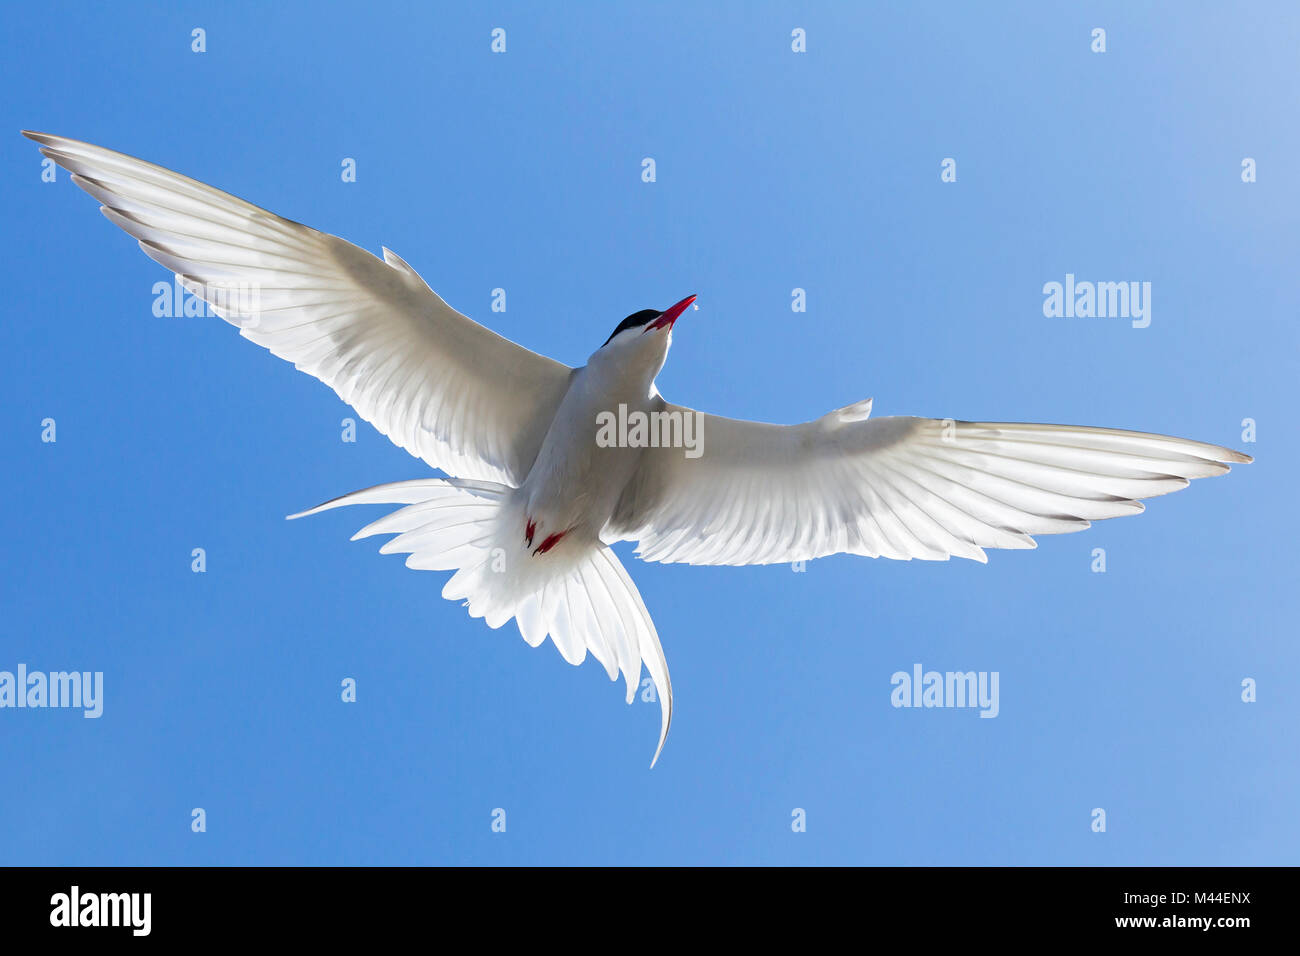 Arctic Tern (Sterna paradisaea), adult in flight. Germany - Stock Image